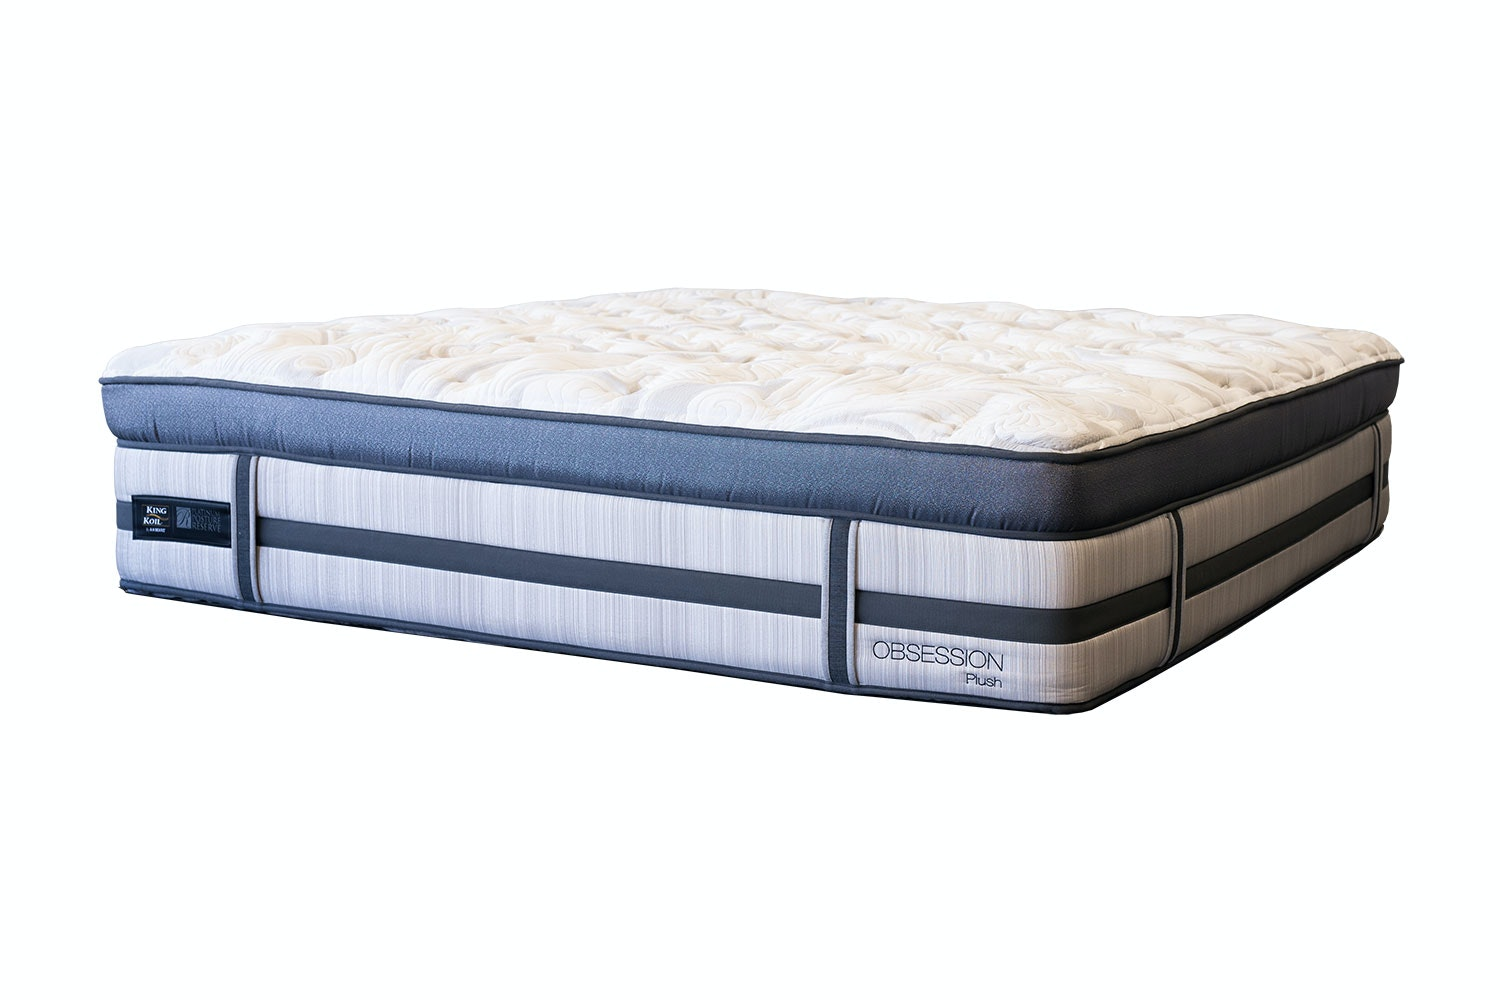 Obsession Plush King Mattress by King Koil